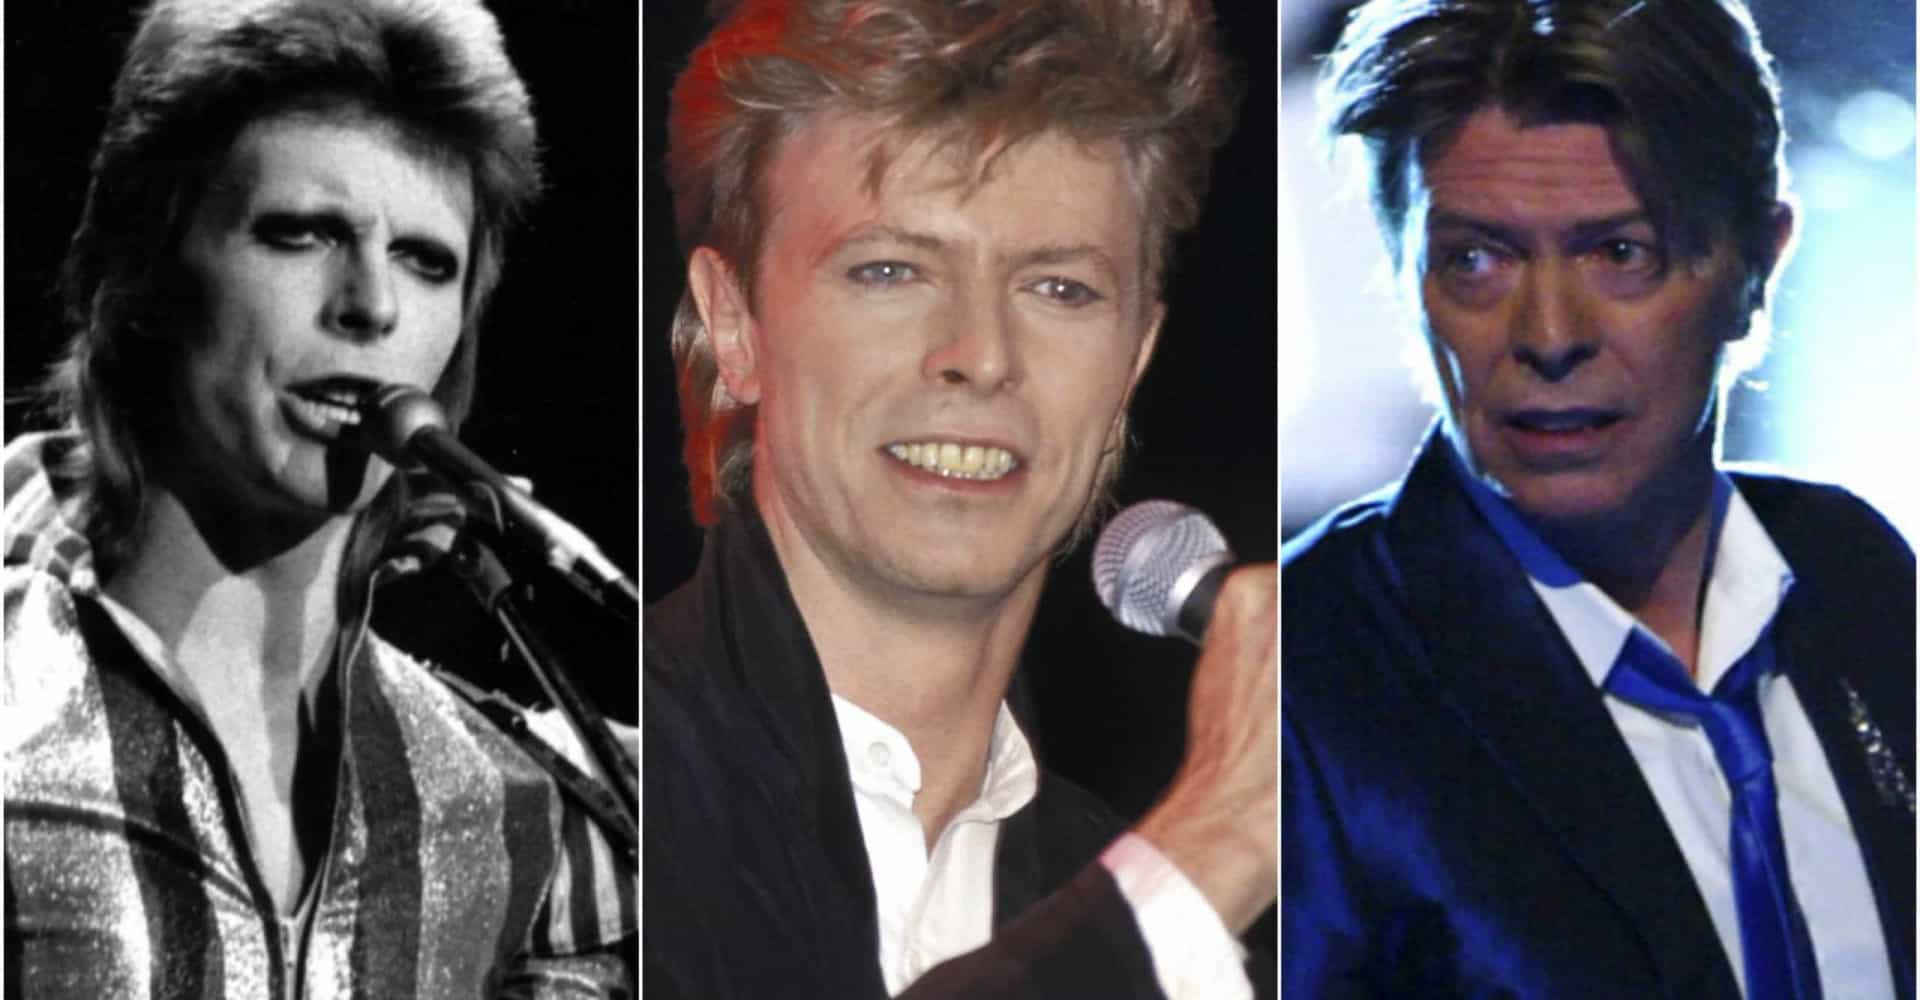 Remembering Ziggy: Looking back on the life of David Bowie